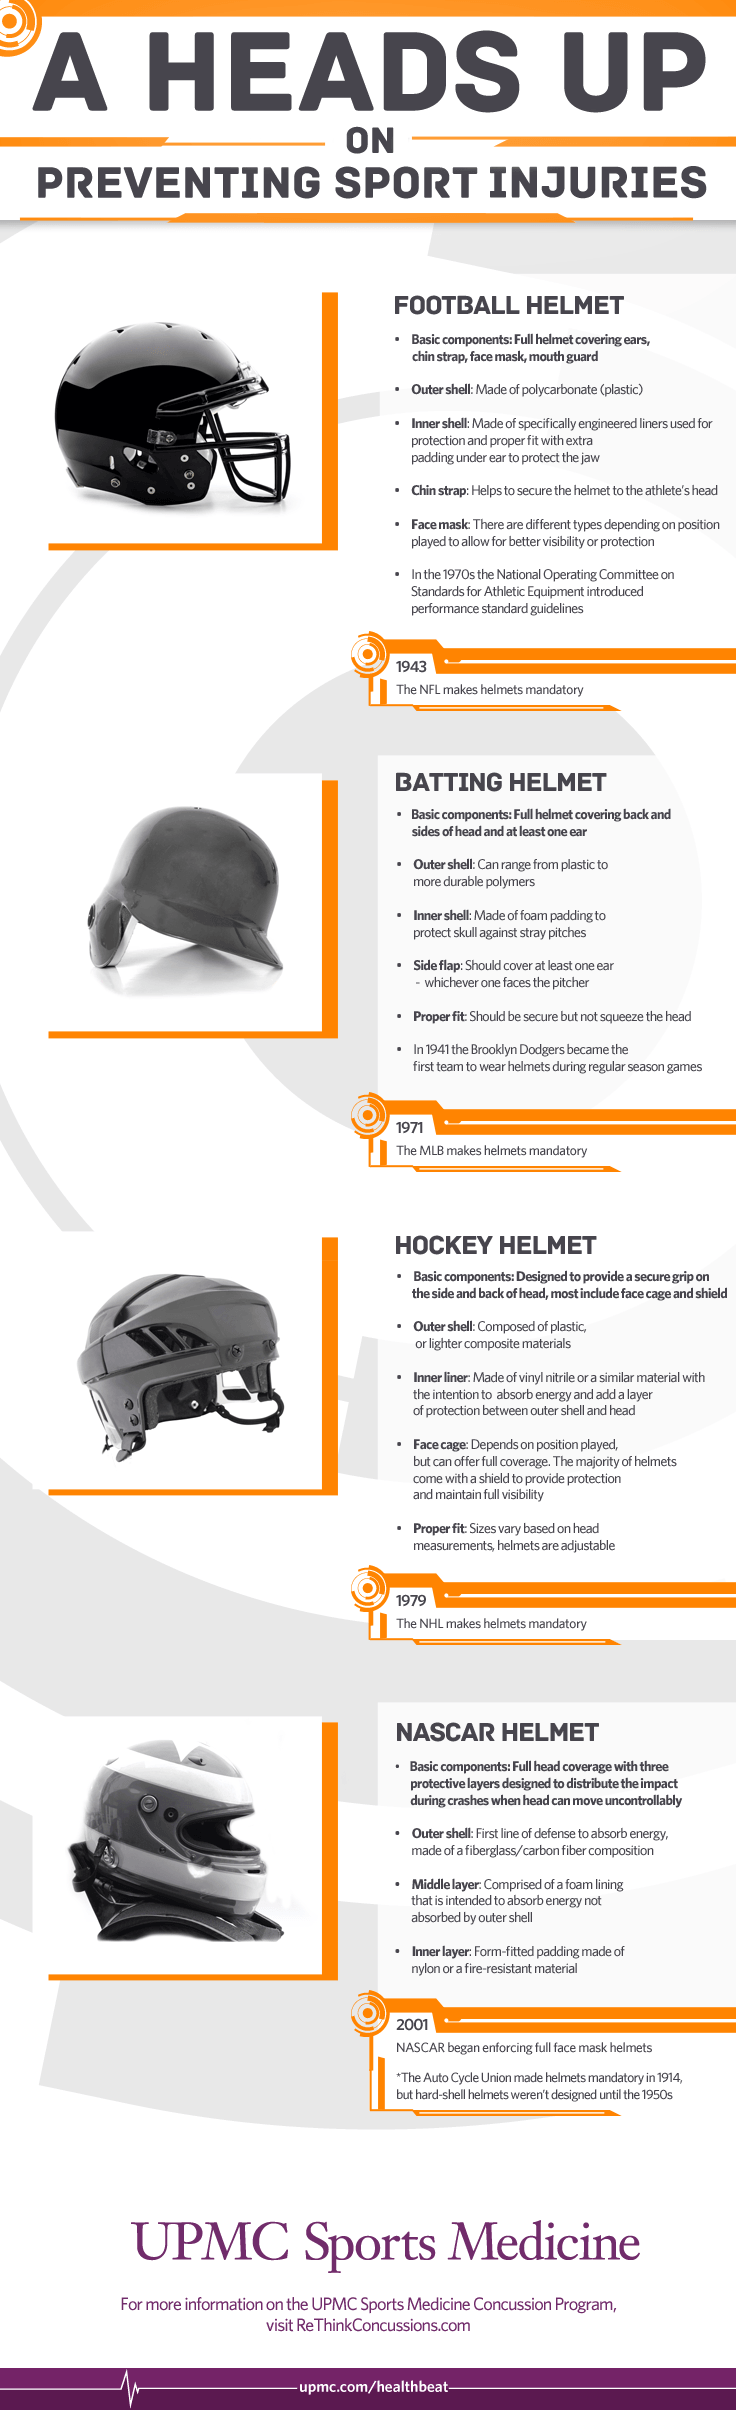 helmets and concussion